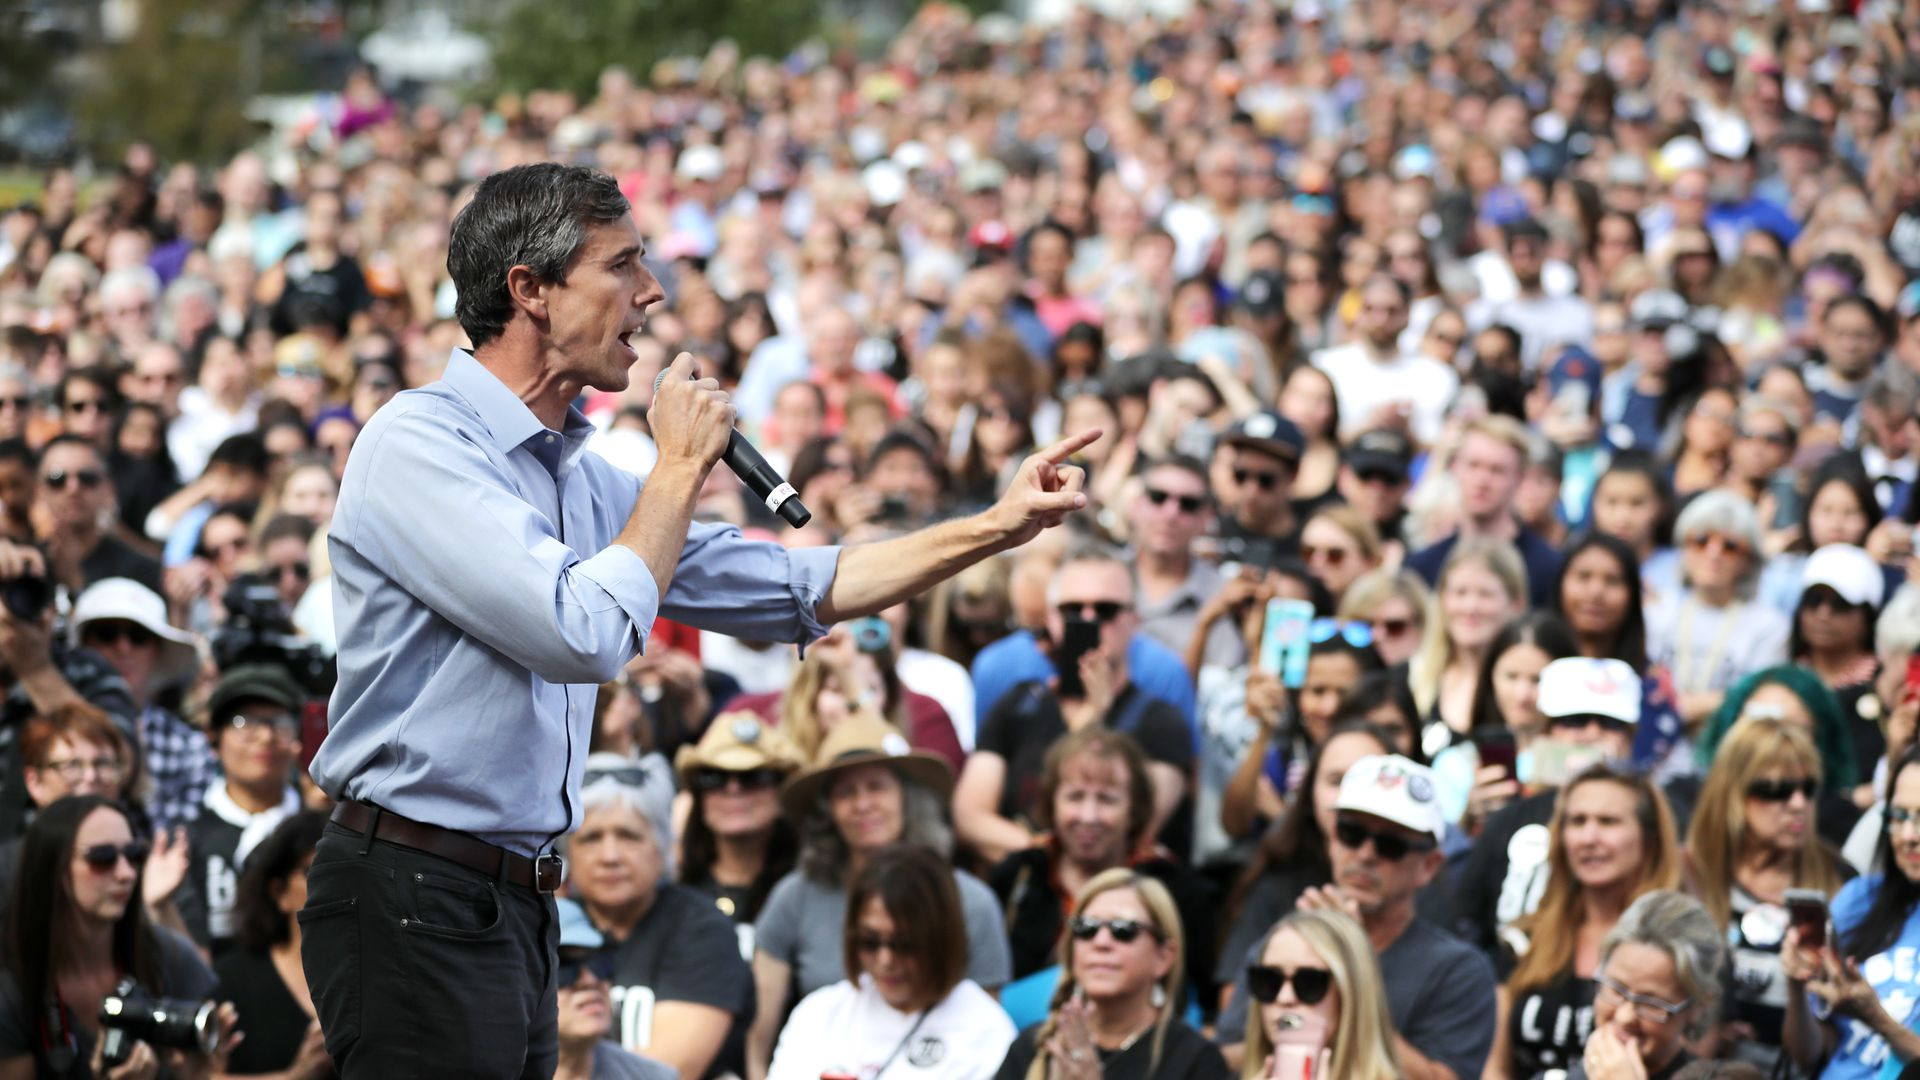 Beto O'Rourke at a rally